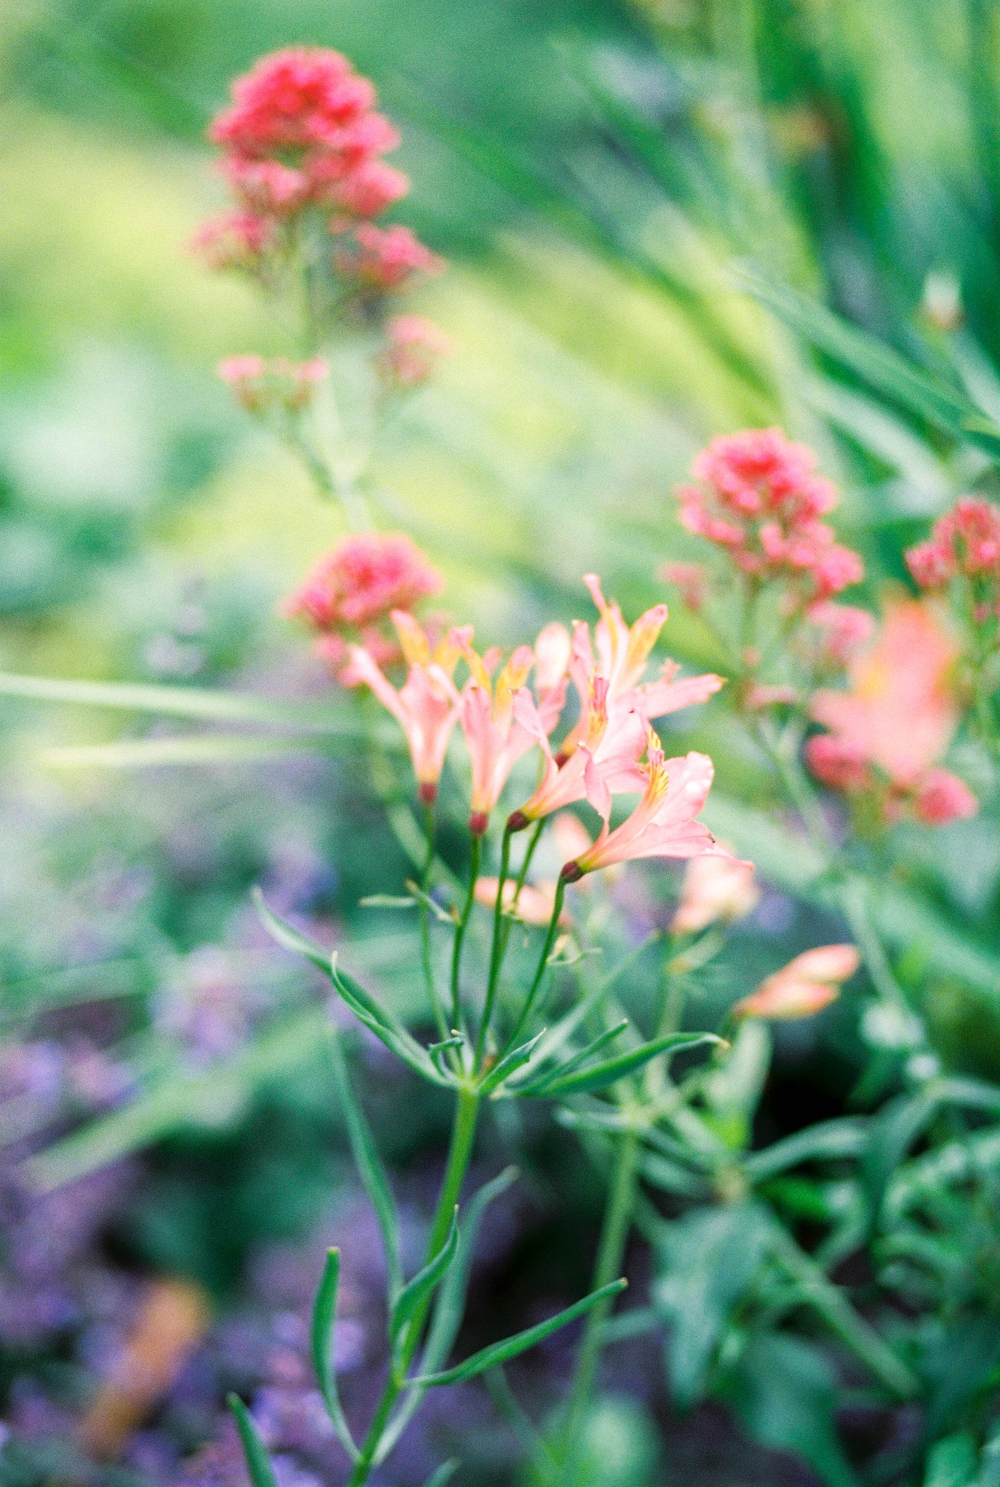 pink flowers with green stems